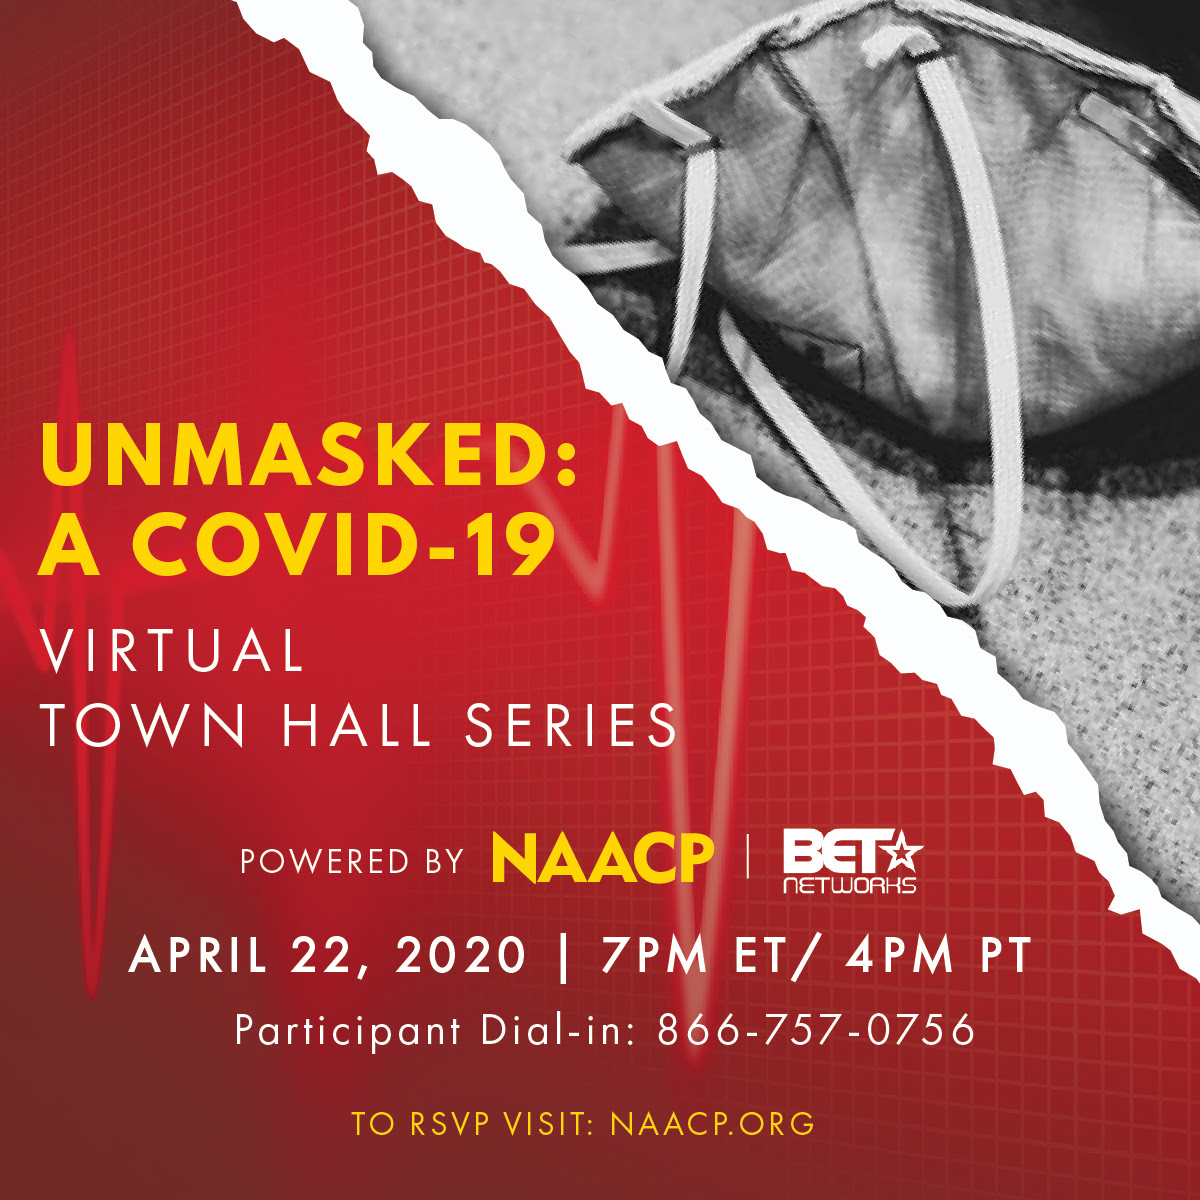 Unmasked: A COVID-19 Virtual Town Hall Series Part 3 - RSVP at naacp.org